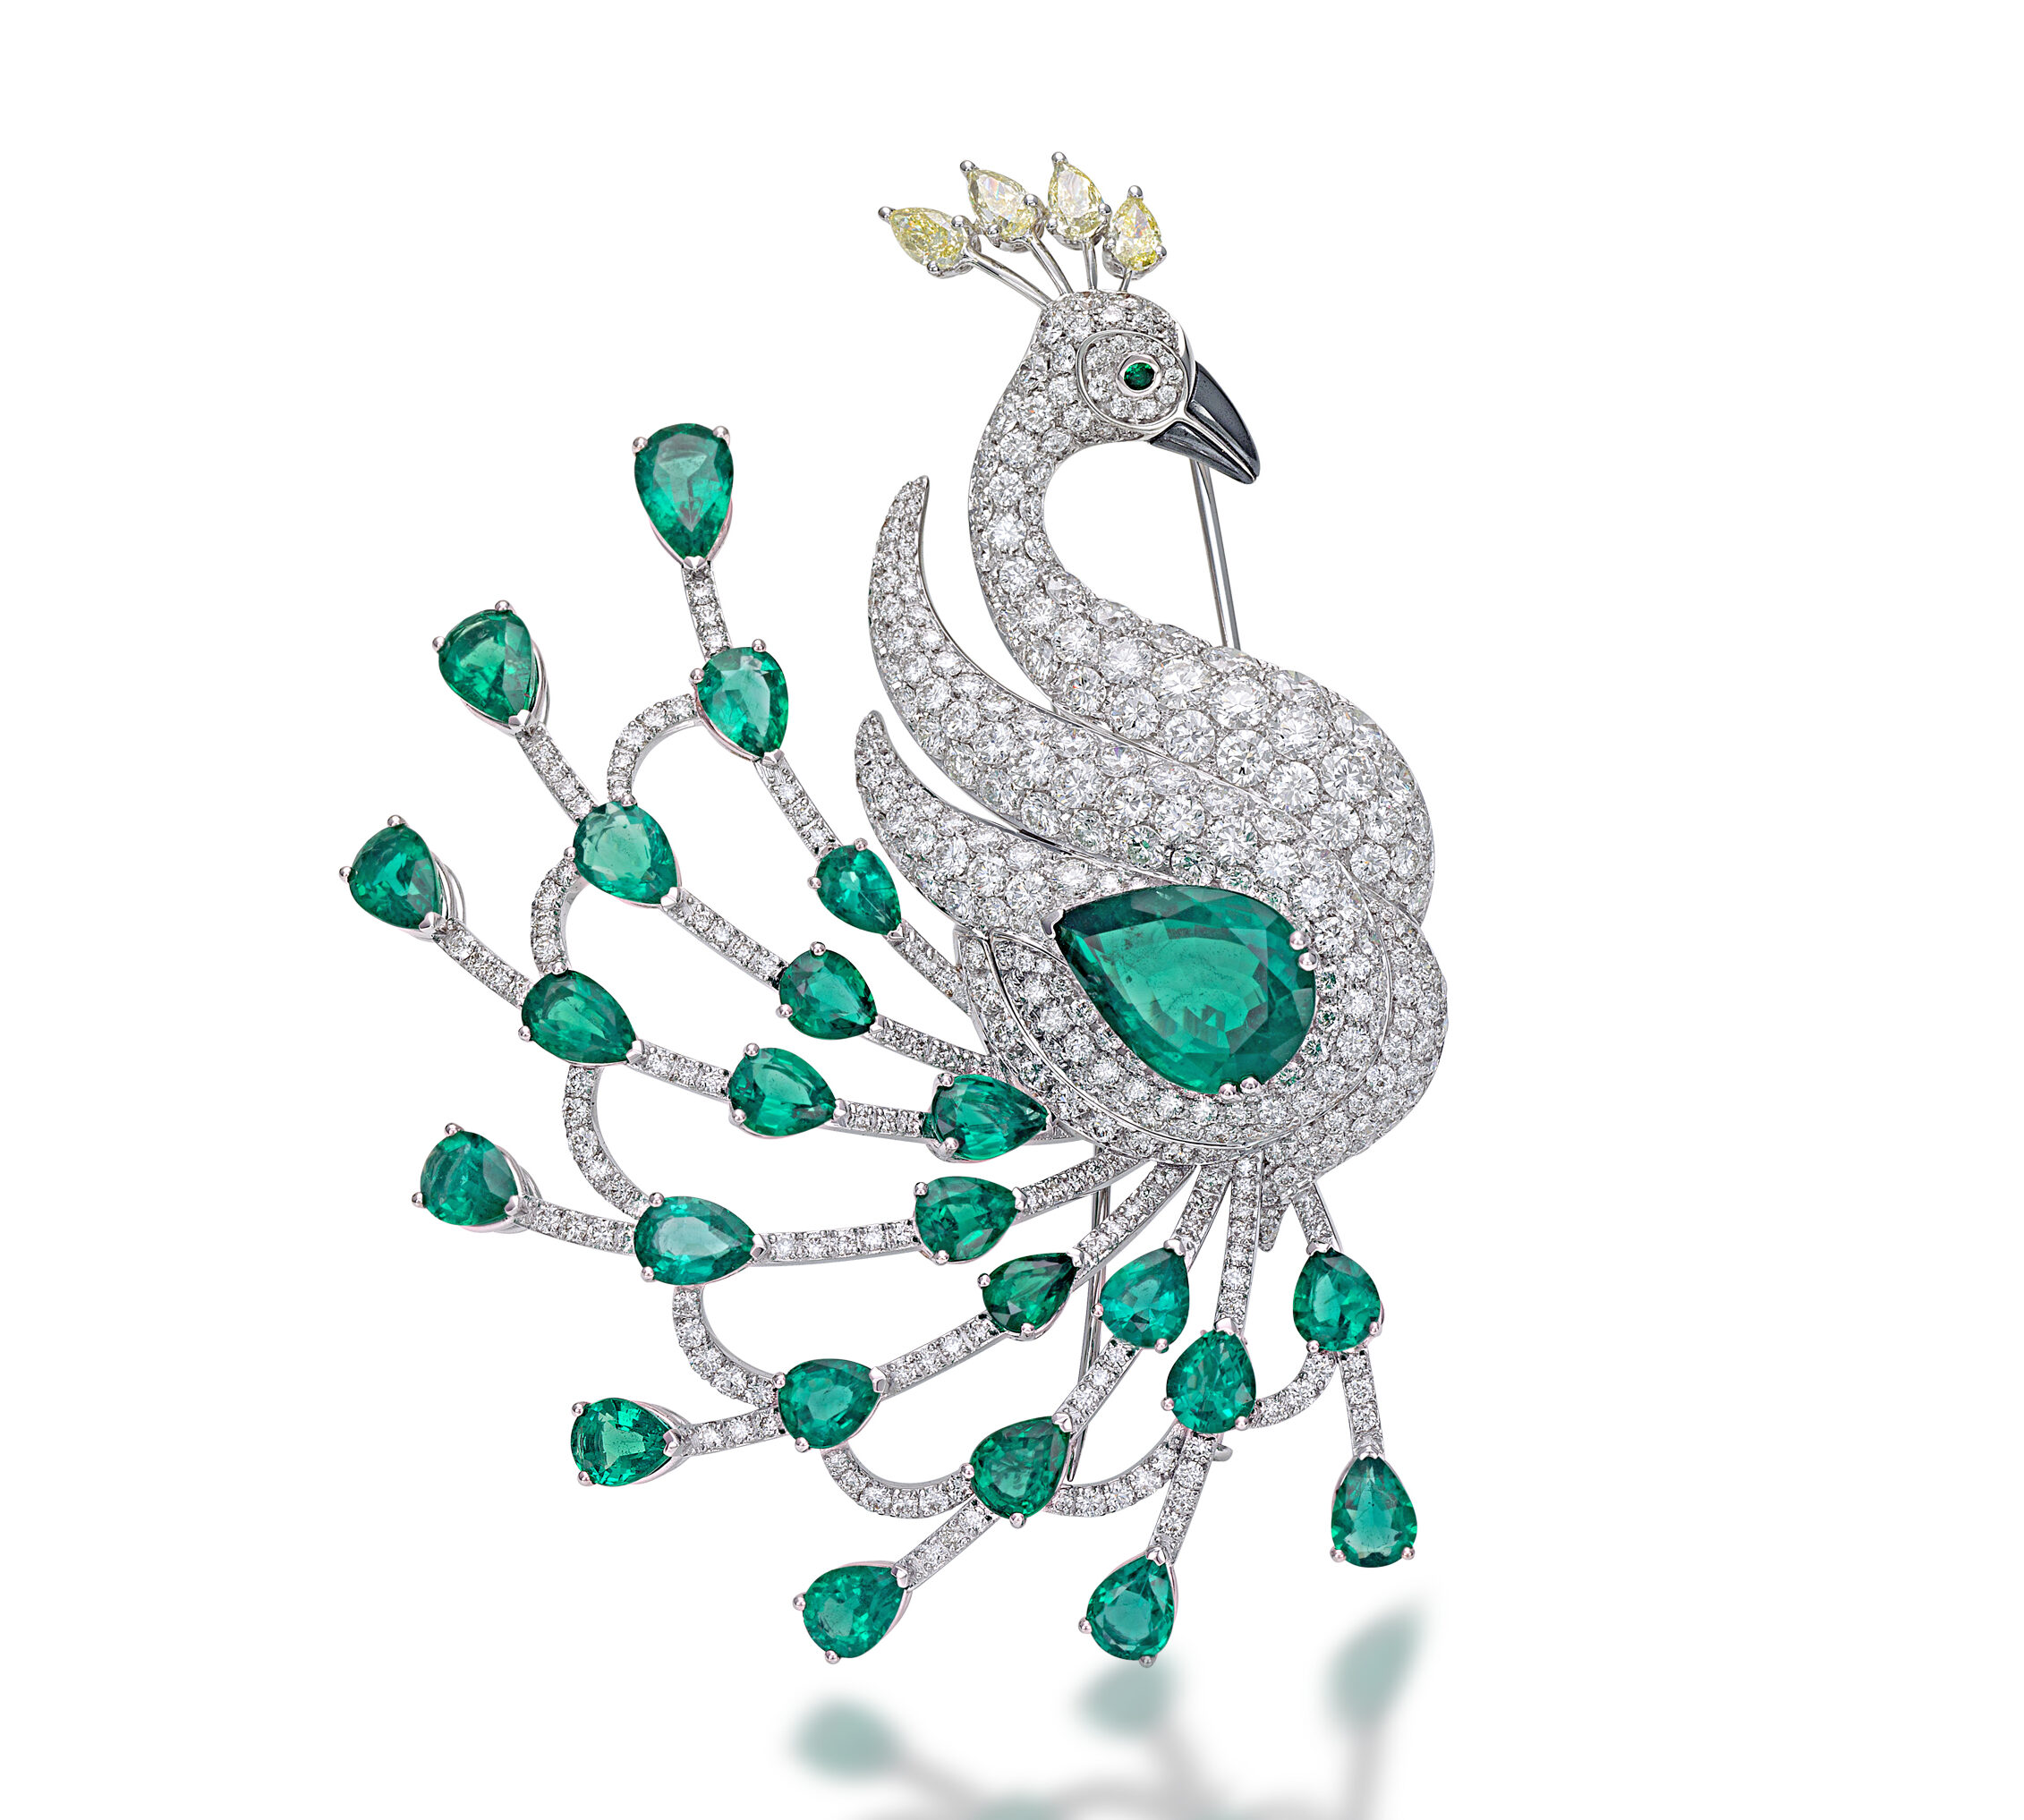 Peacock brooch with emeralds, white diamonds, yellow diamonds and hematite by Picchiotti